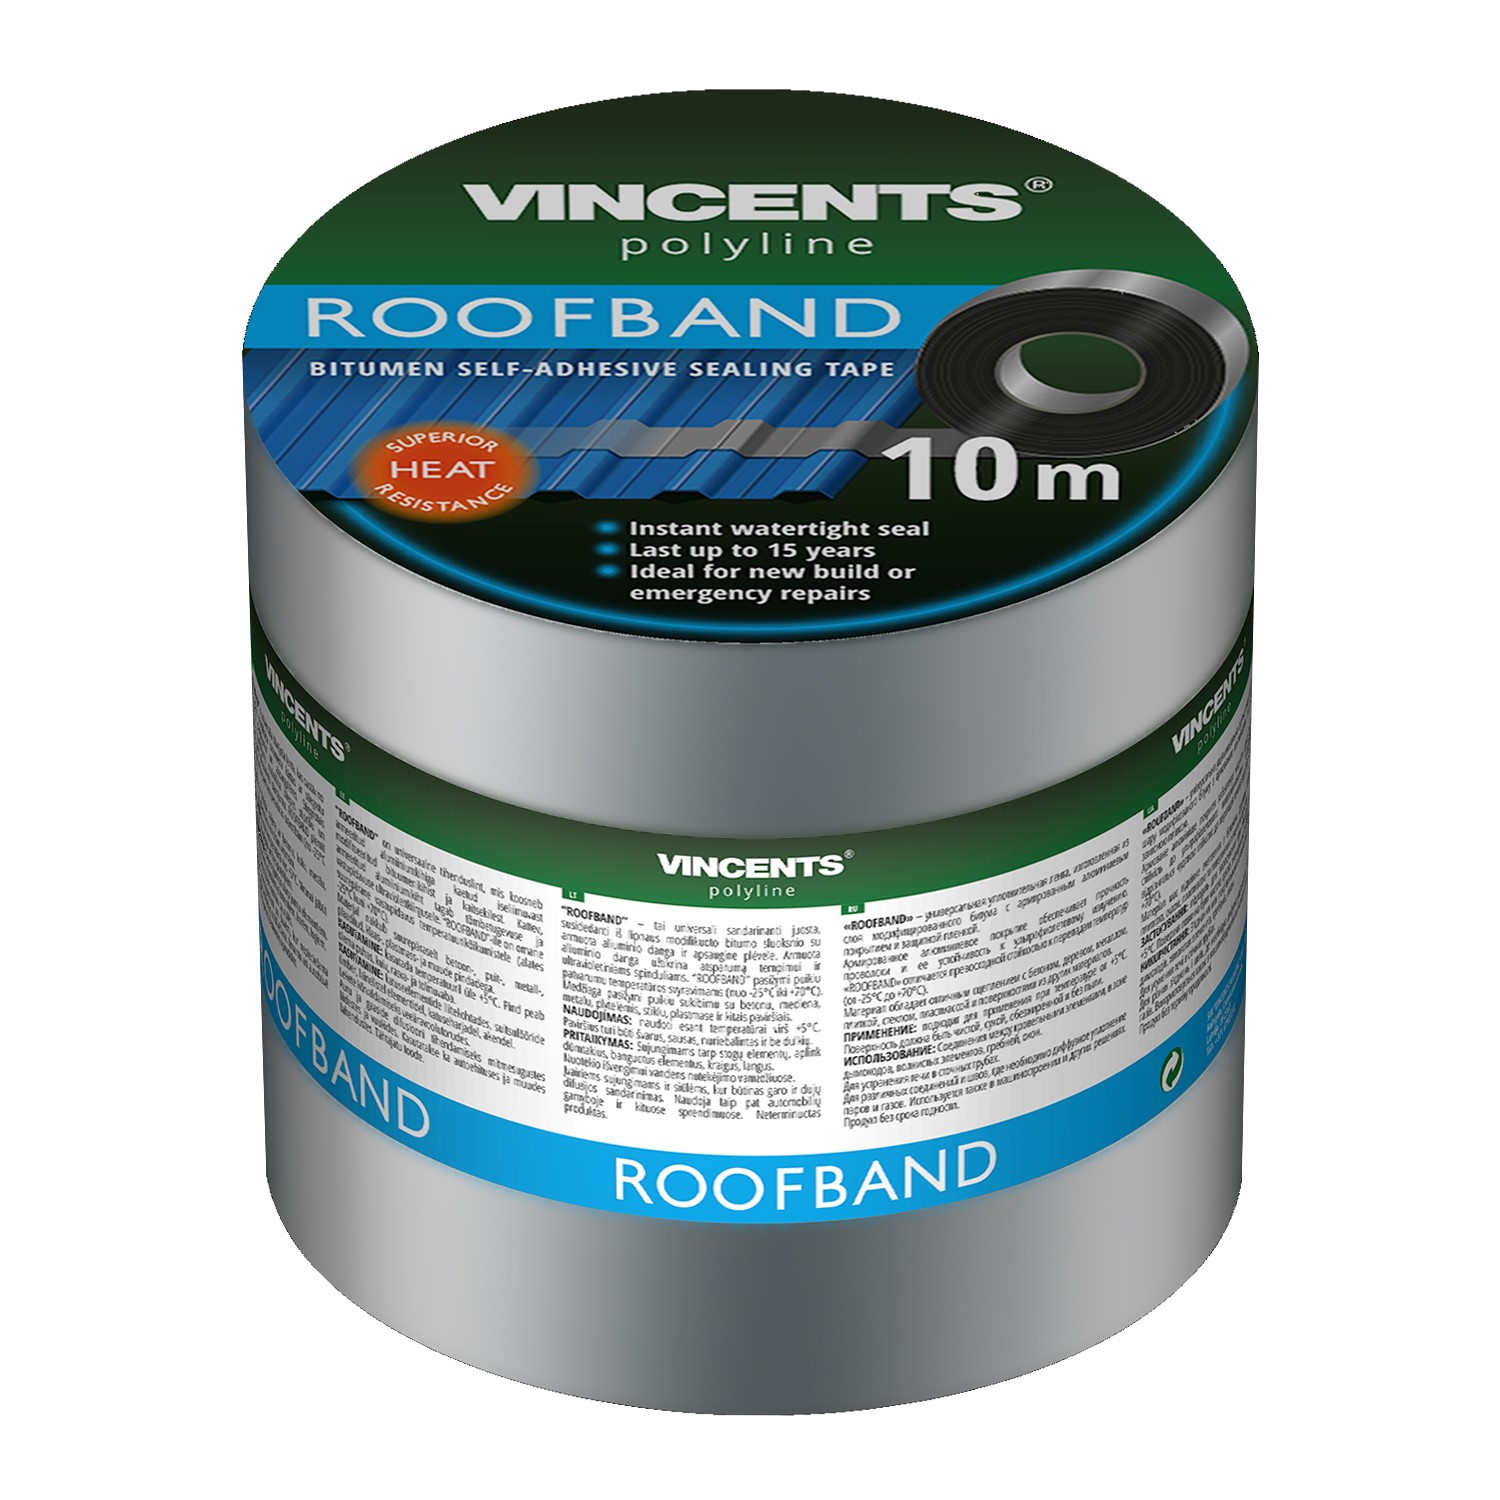 Roofband